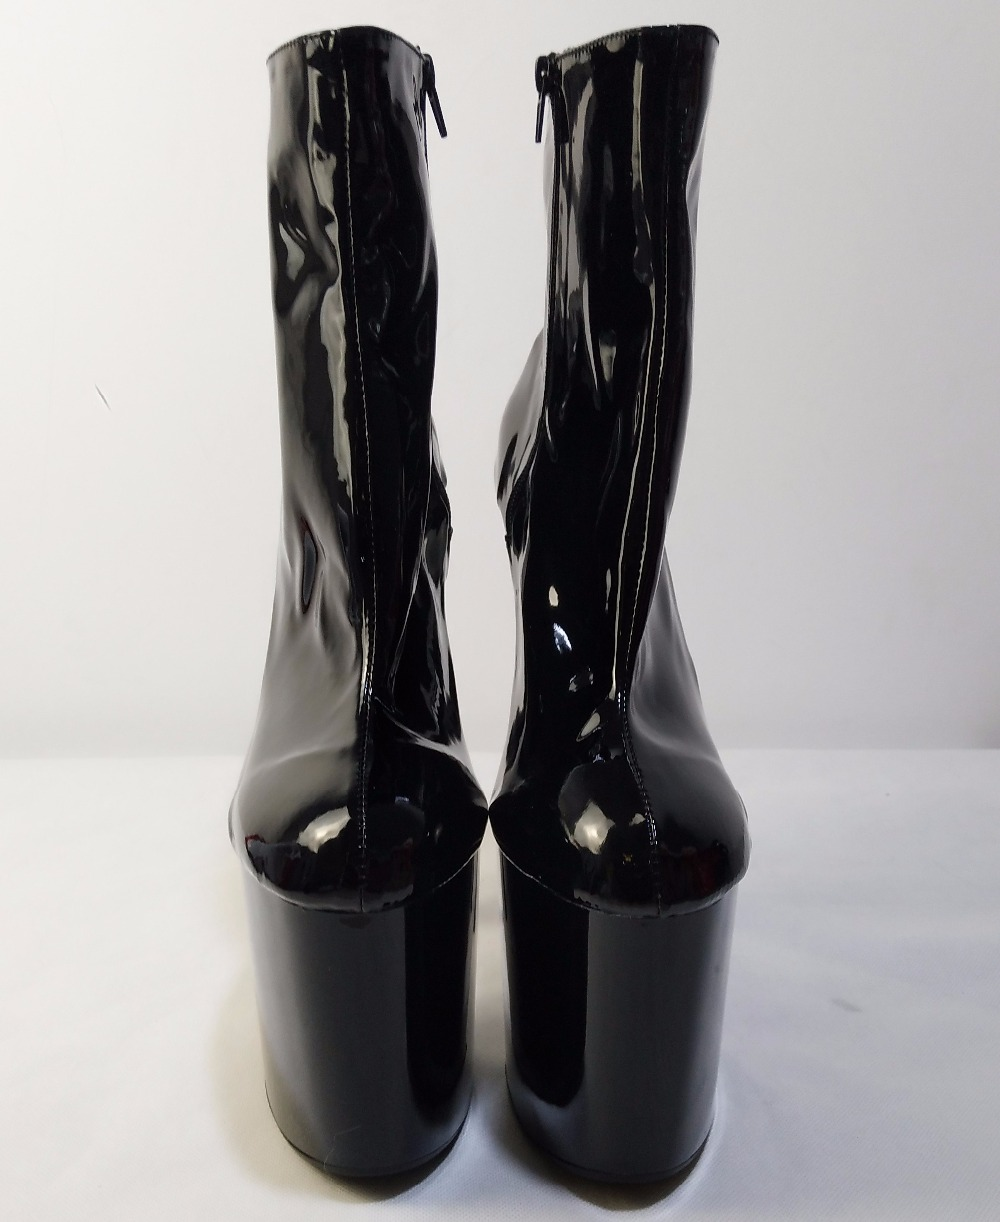 8023c55b0af5 8 Inch Sexy Ankle Boots 20cm High-Heeled Shoes Crystal Boots ...